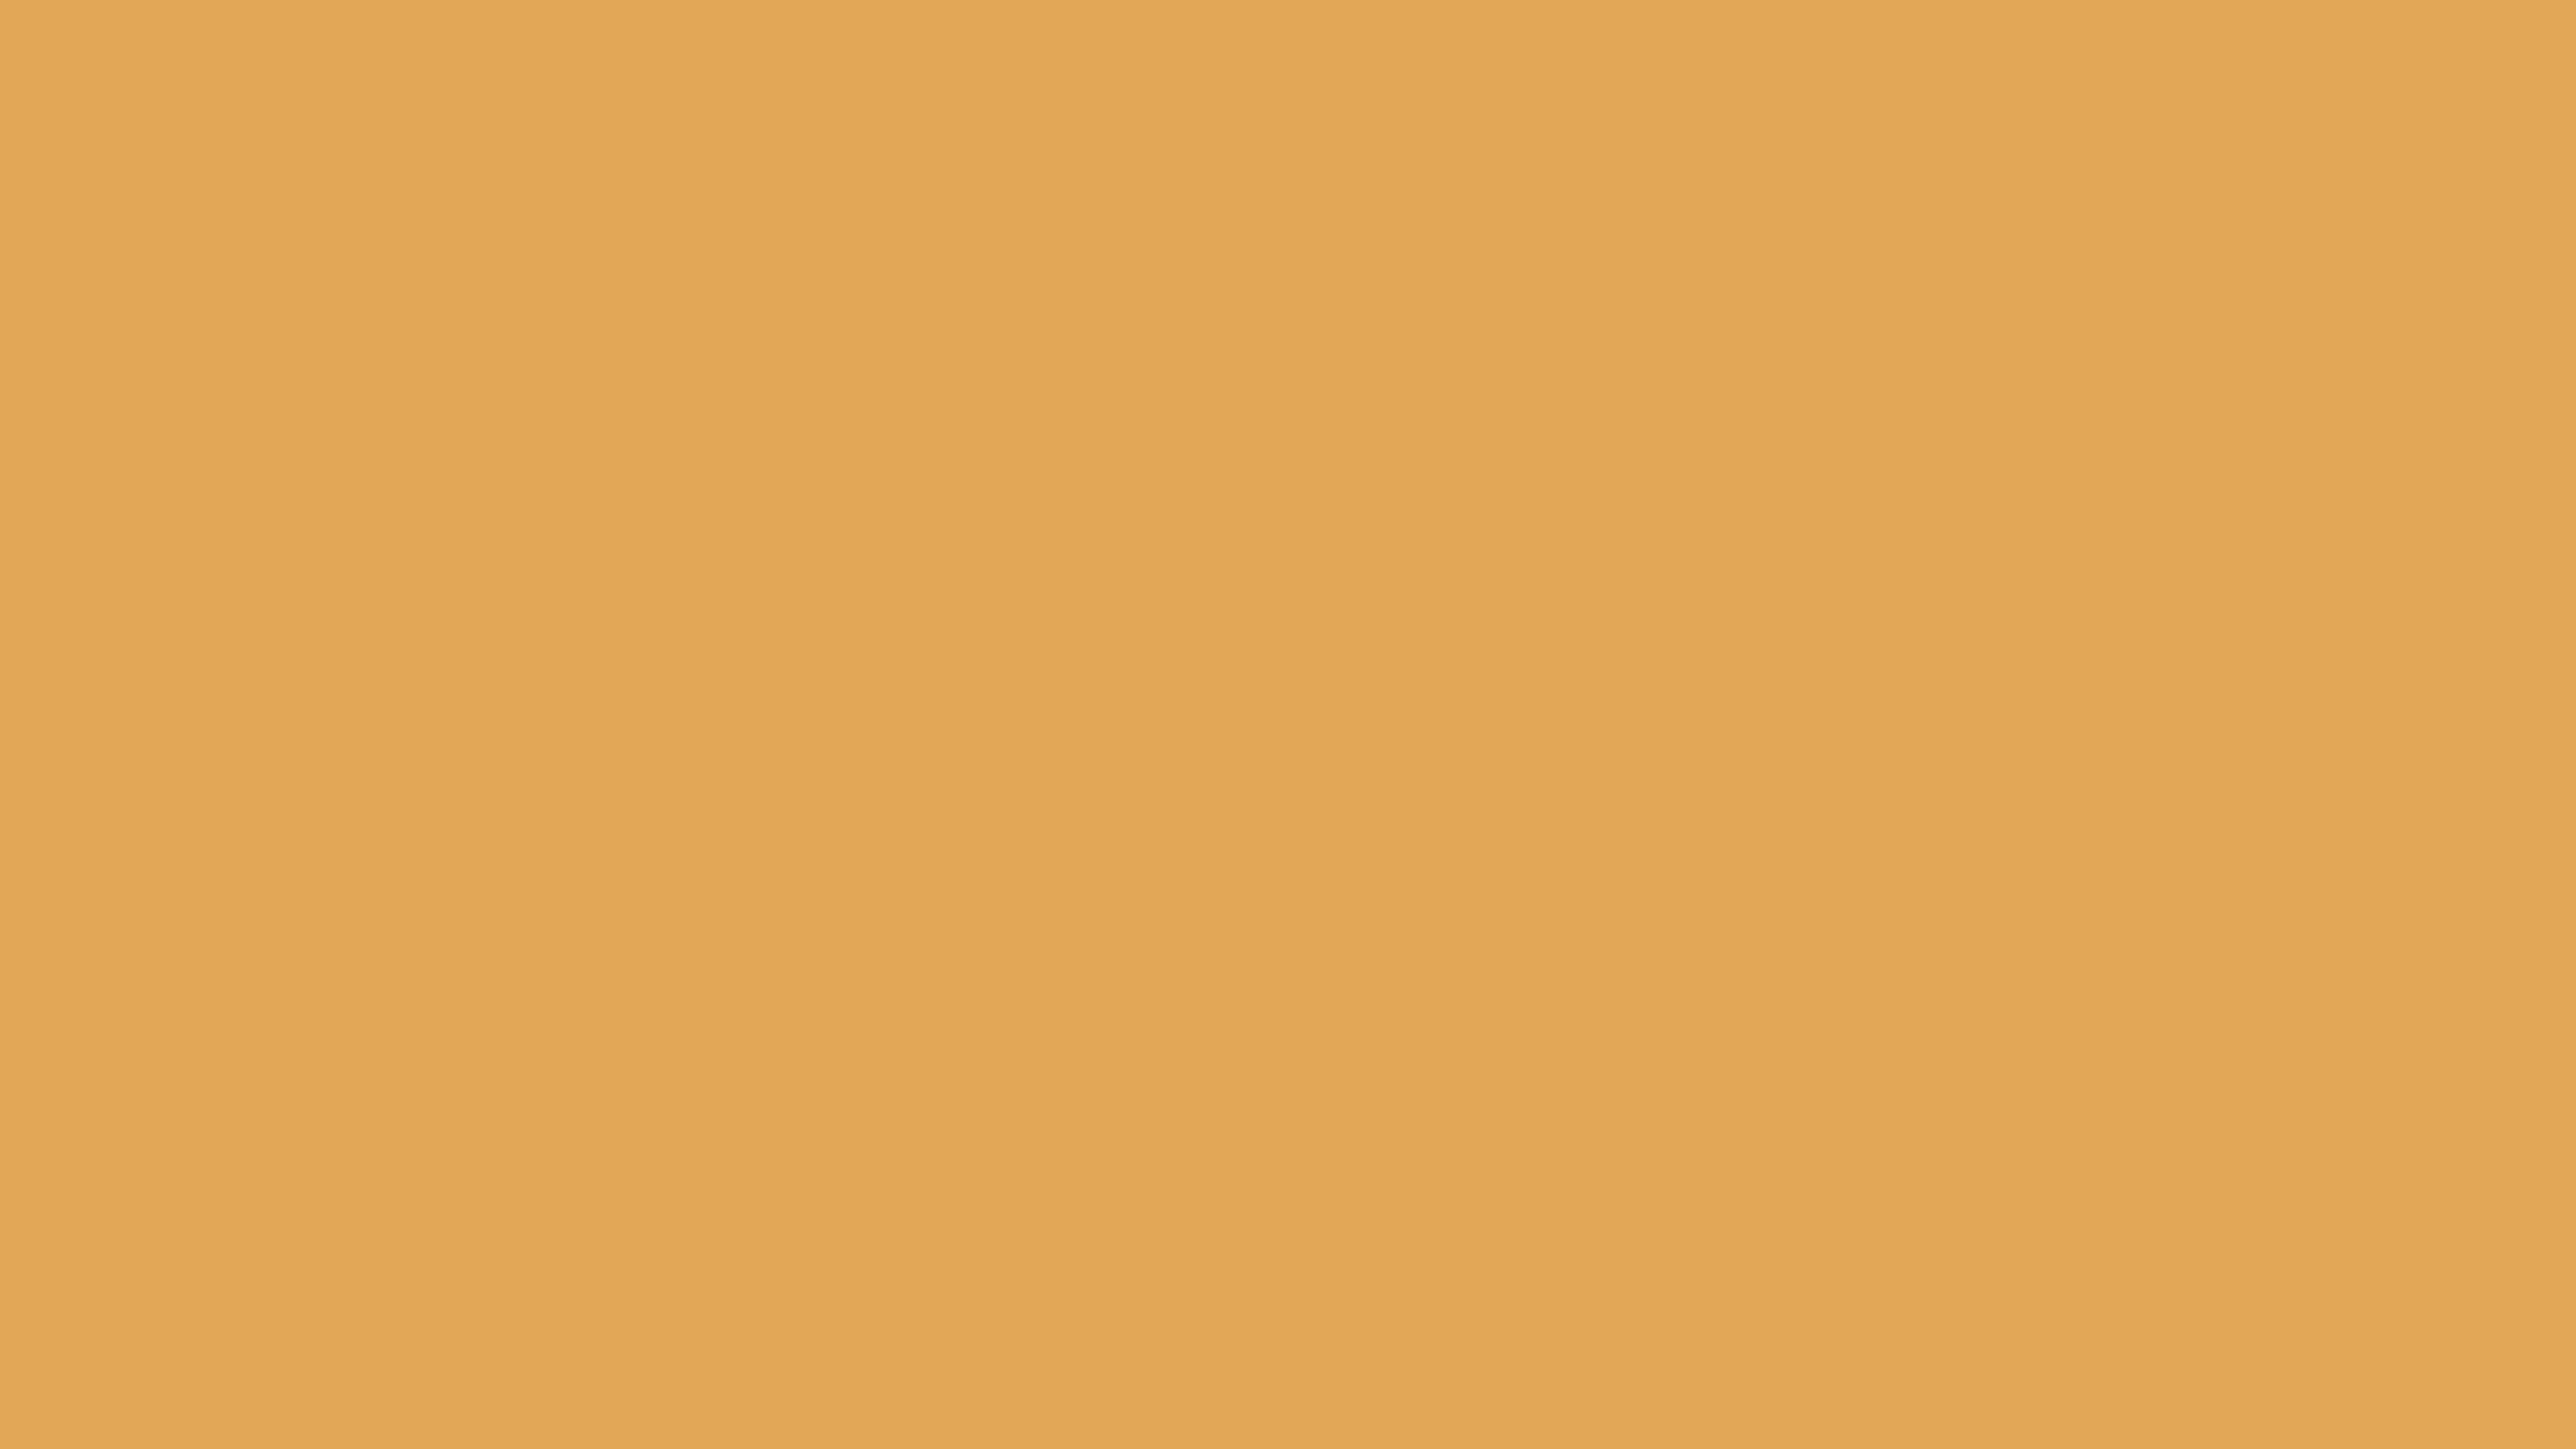 5120x2880 Indian Yellow Solid Color Background